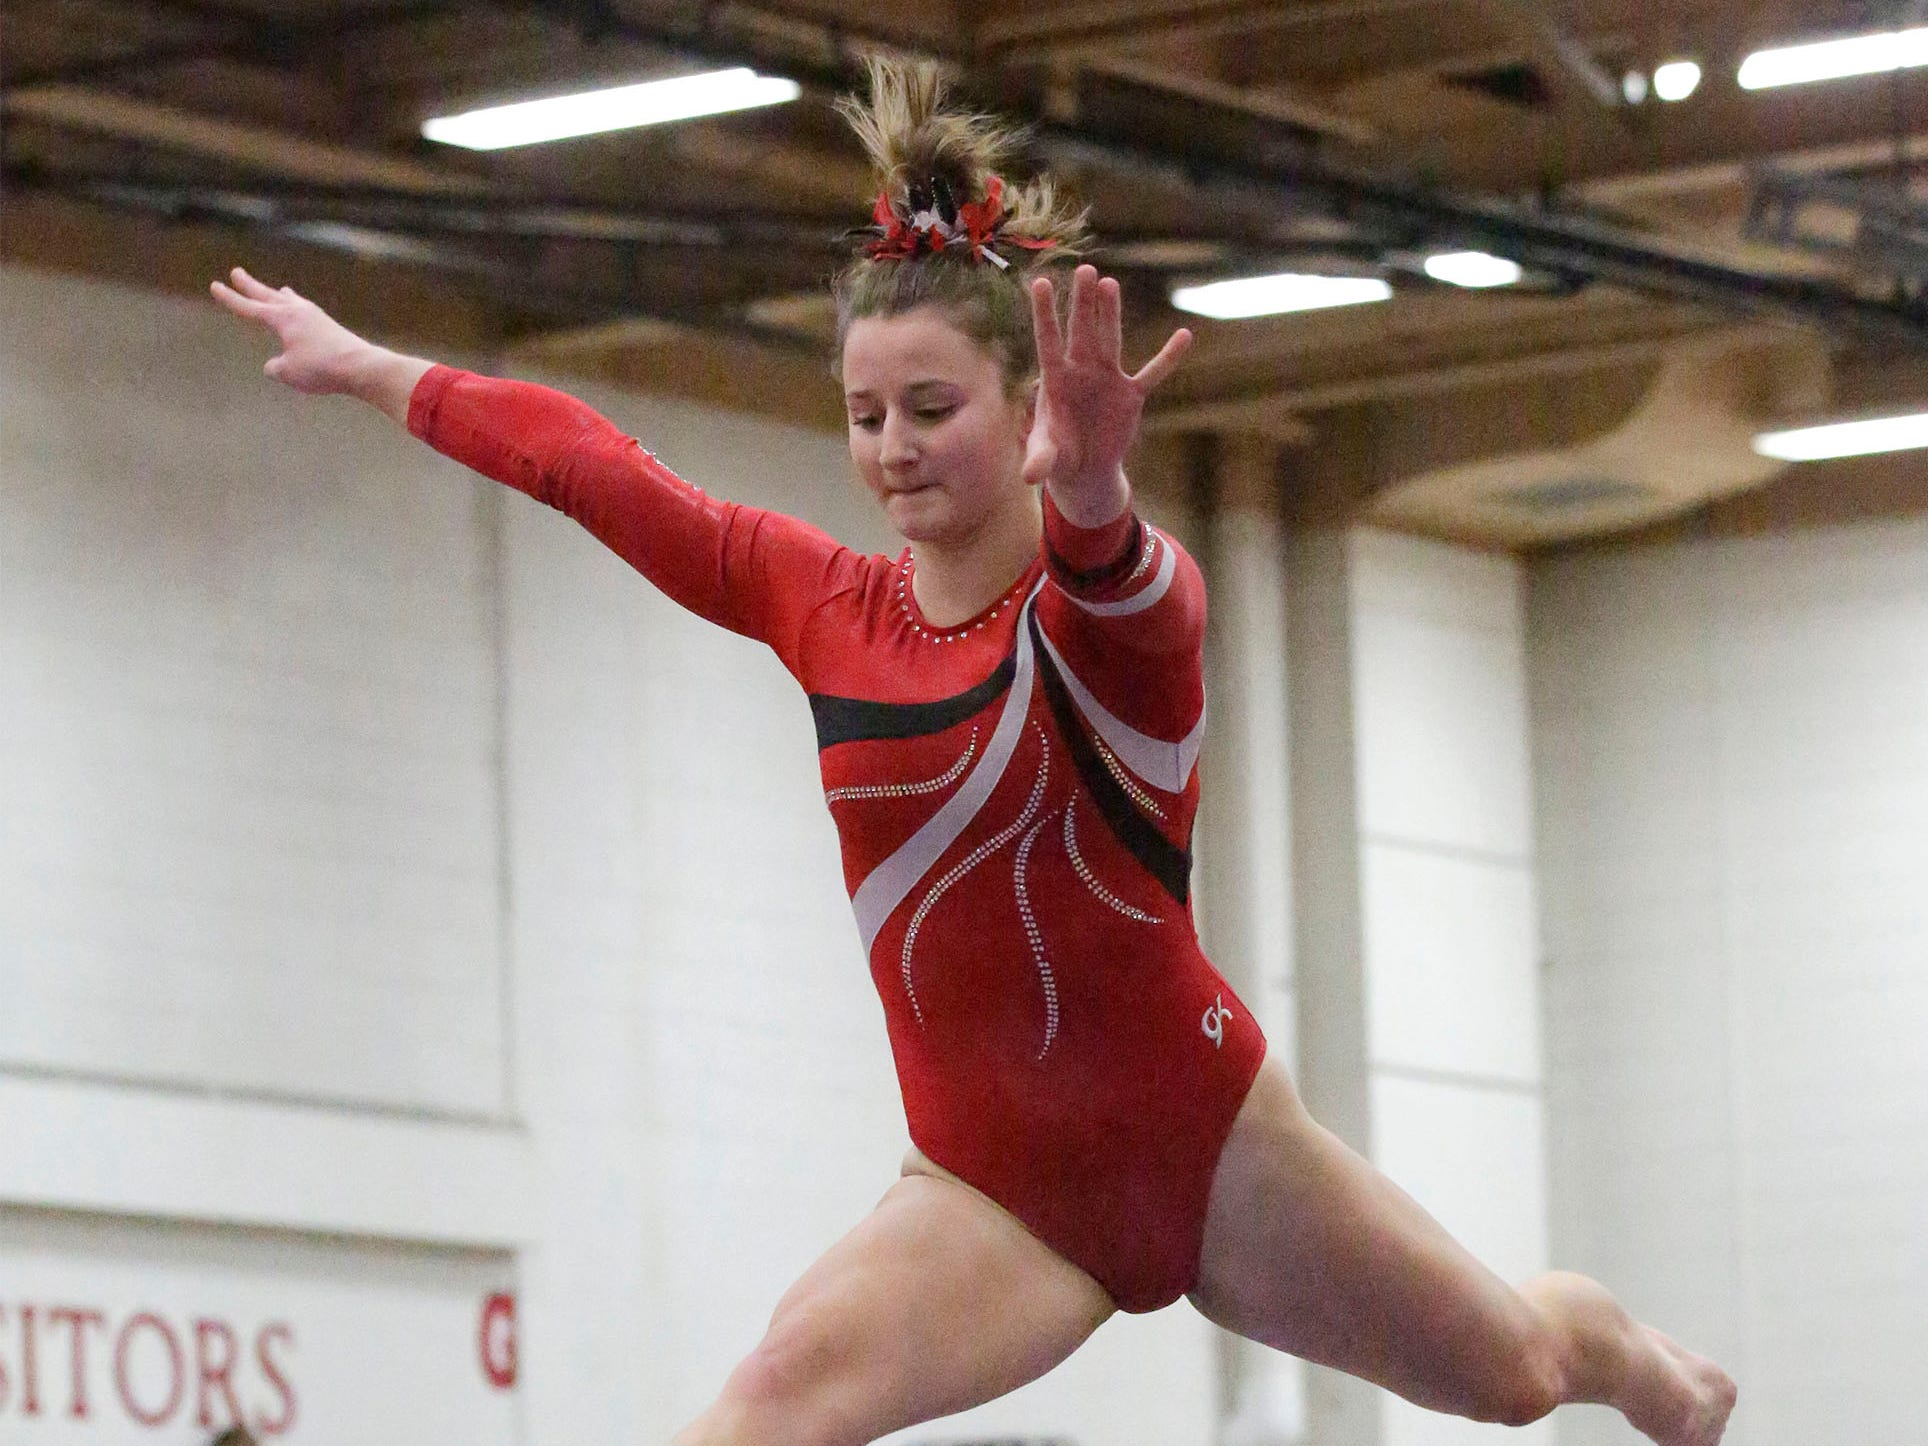 Manitowoc Lincoln's Brynn Tackett is airborne on the balance beam during the WIAA Eastern Valley Conference Gymnastics Meet at Sheboygan South, Friday, February 15, 2019, in Sheboygan, Wis.